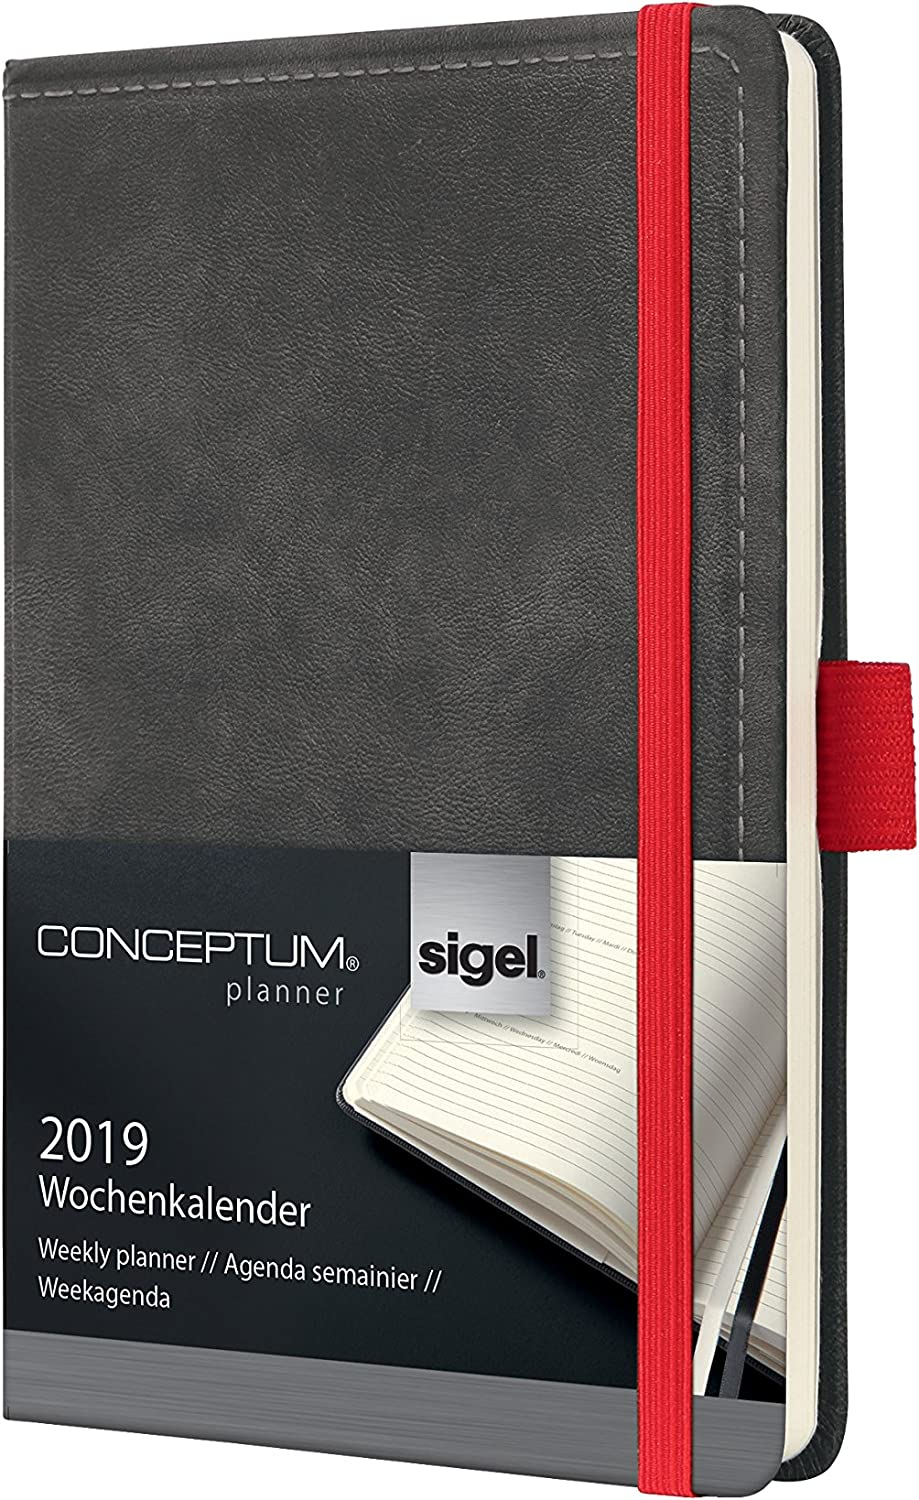 Sigel C1958 Agenda Settimanale 2019, Ca. A6, Hardcover, Vintage, Versione Used Leather Antracite, Conceptum